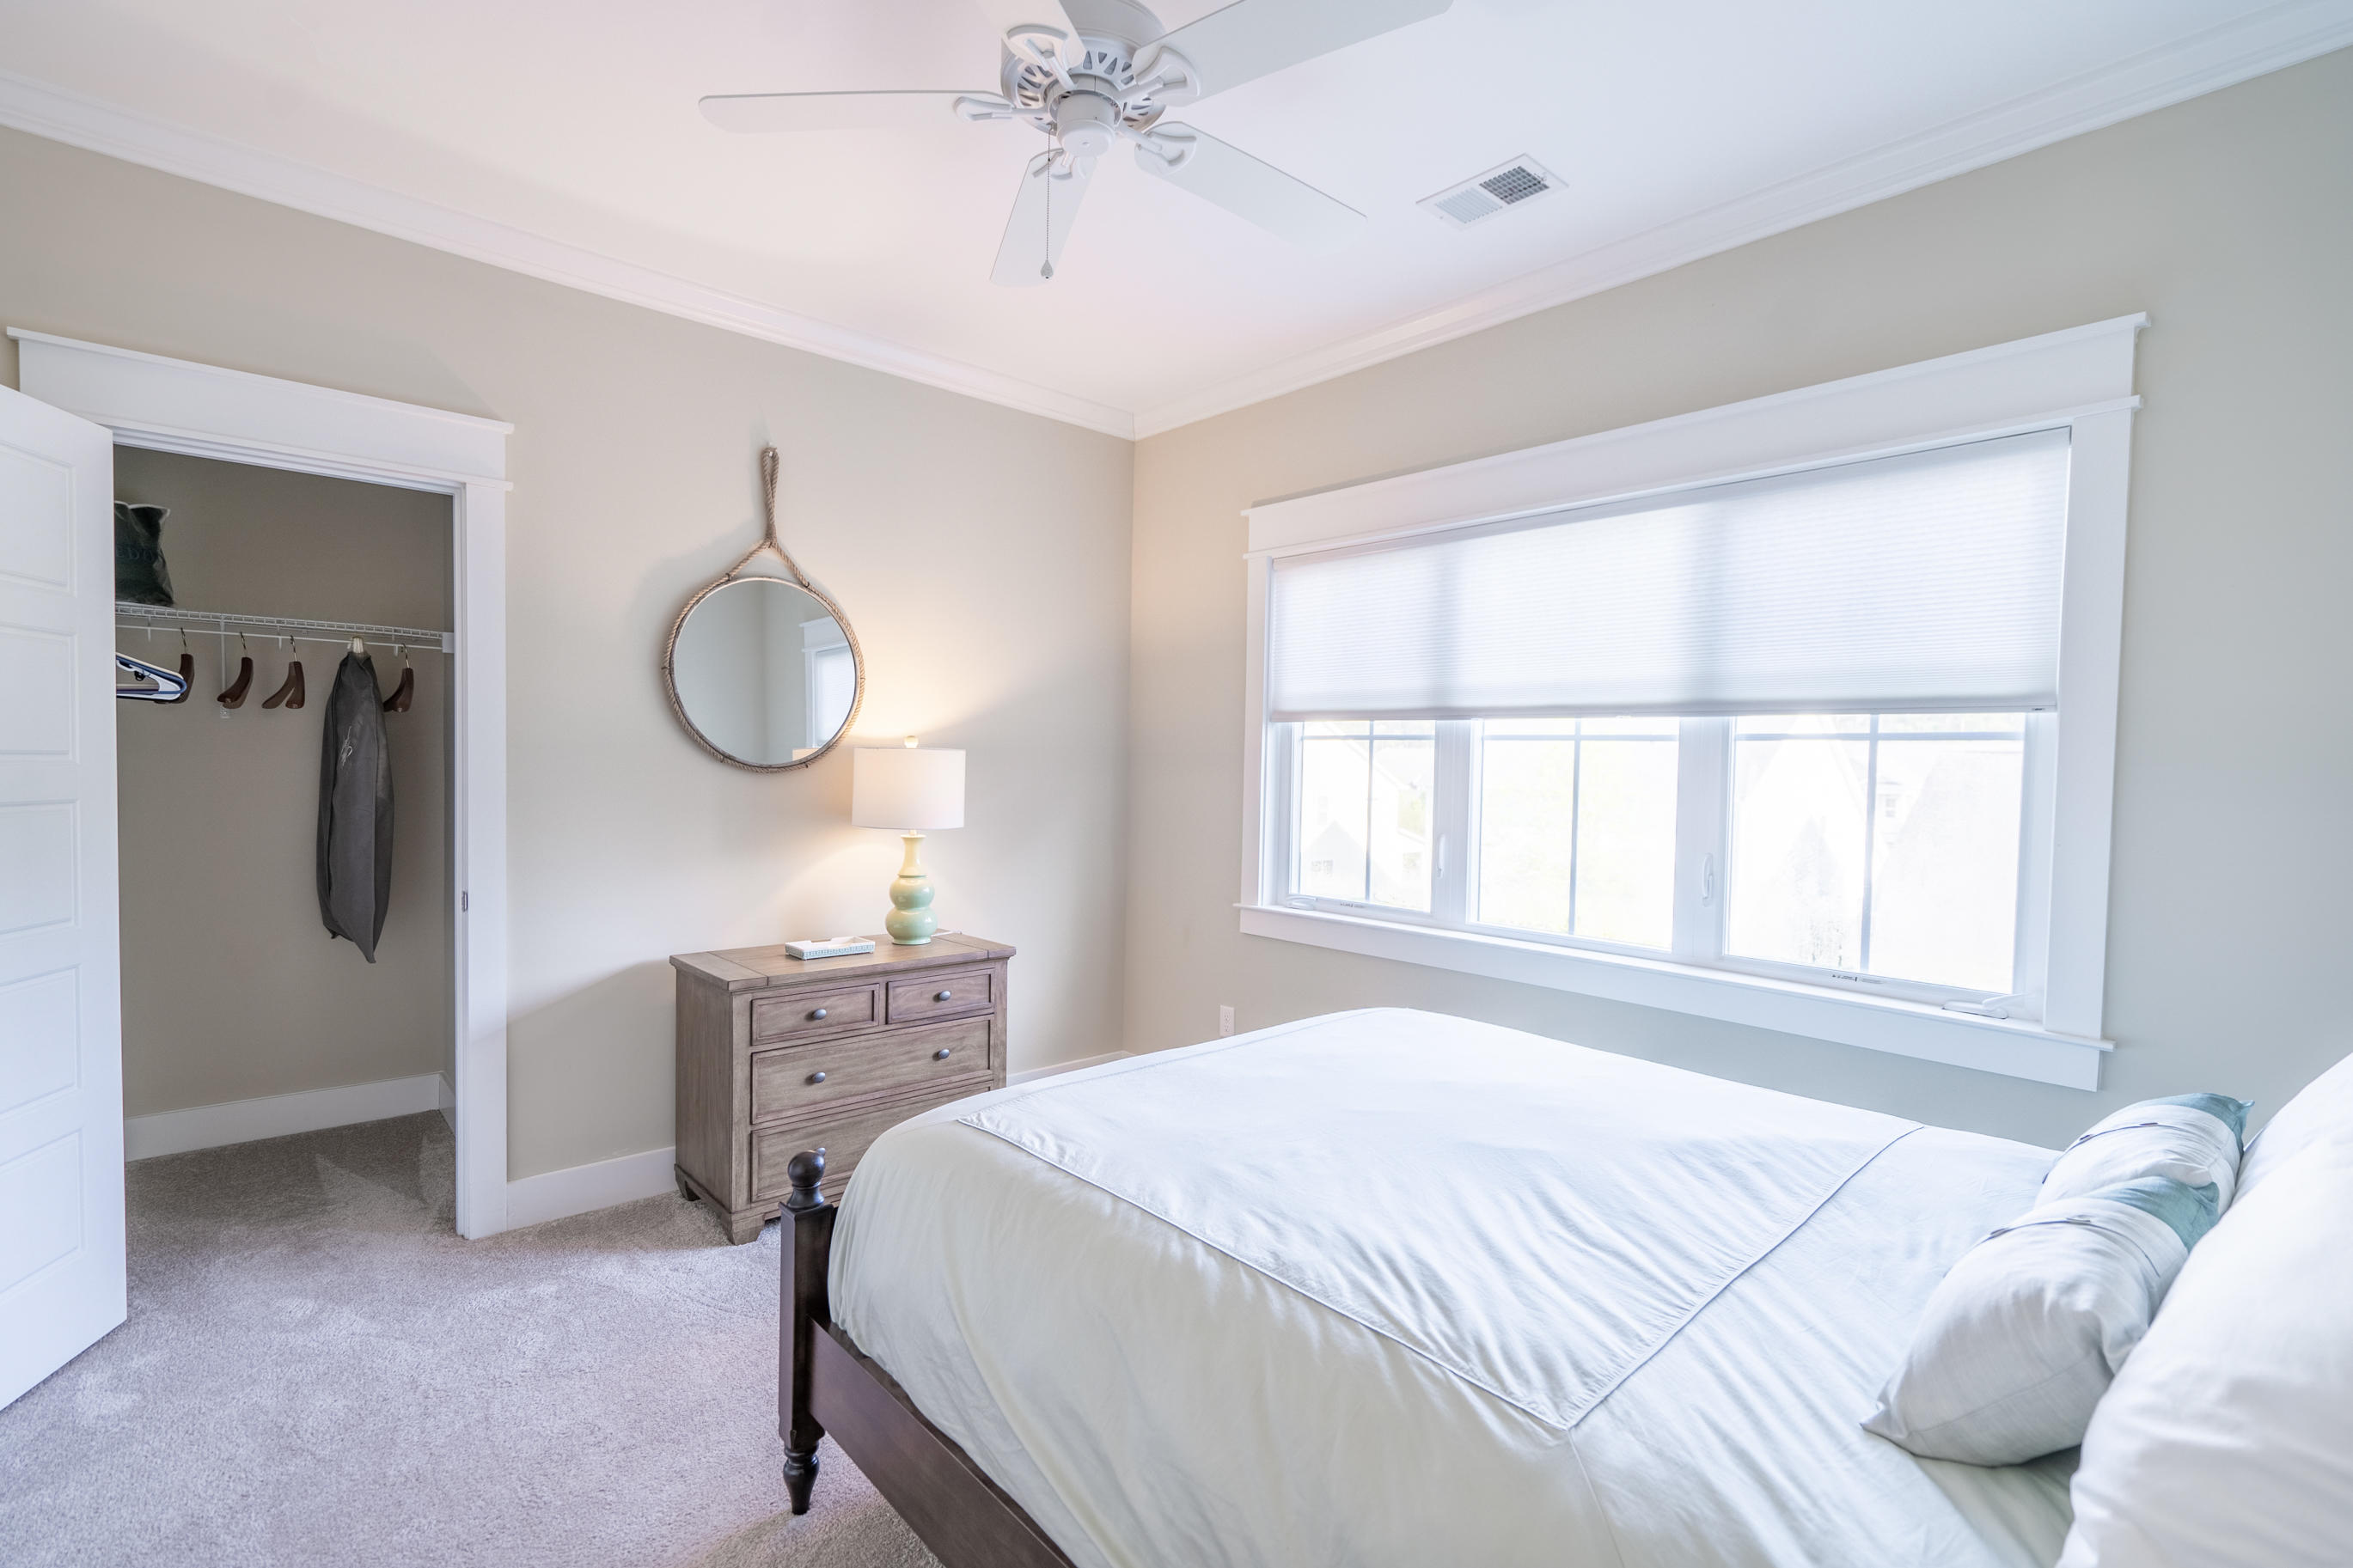 Rivertowne On The Wando Homes For Sale - 2608 Alderly, Mount Pleasant, SC - 0